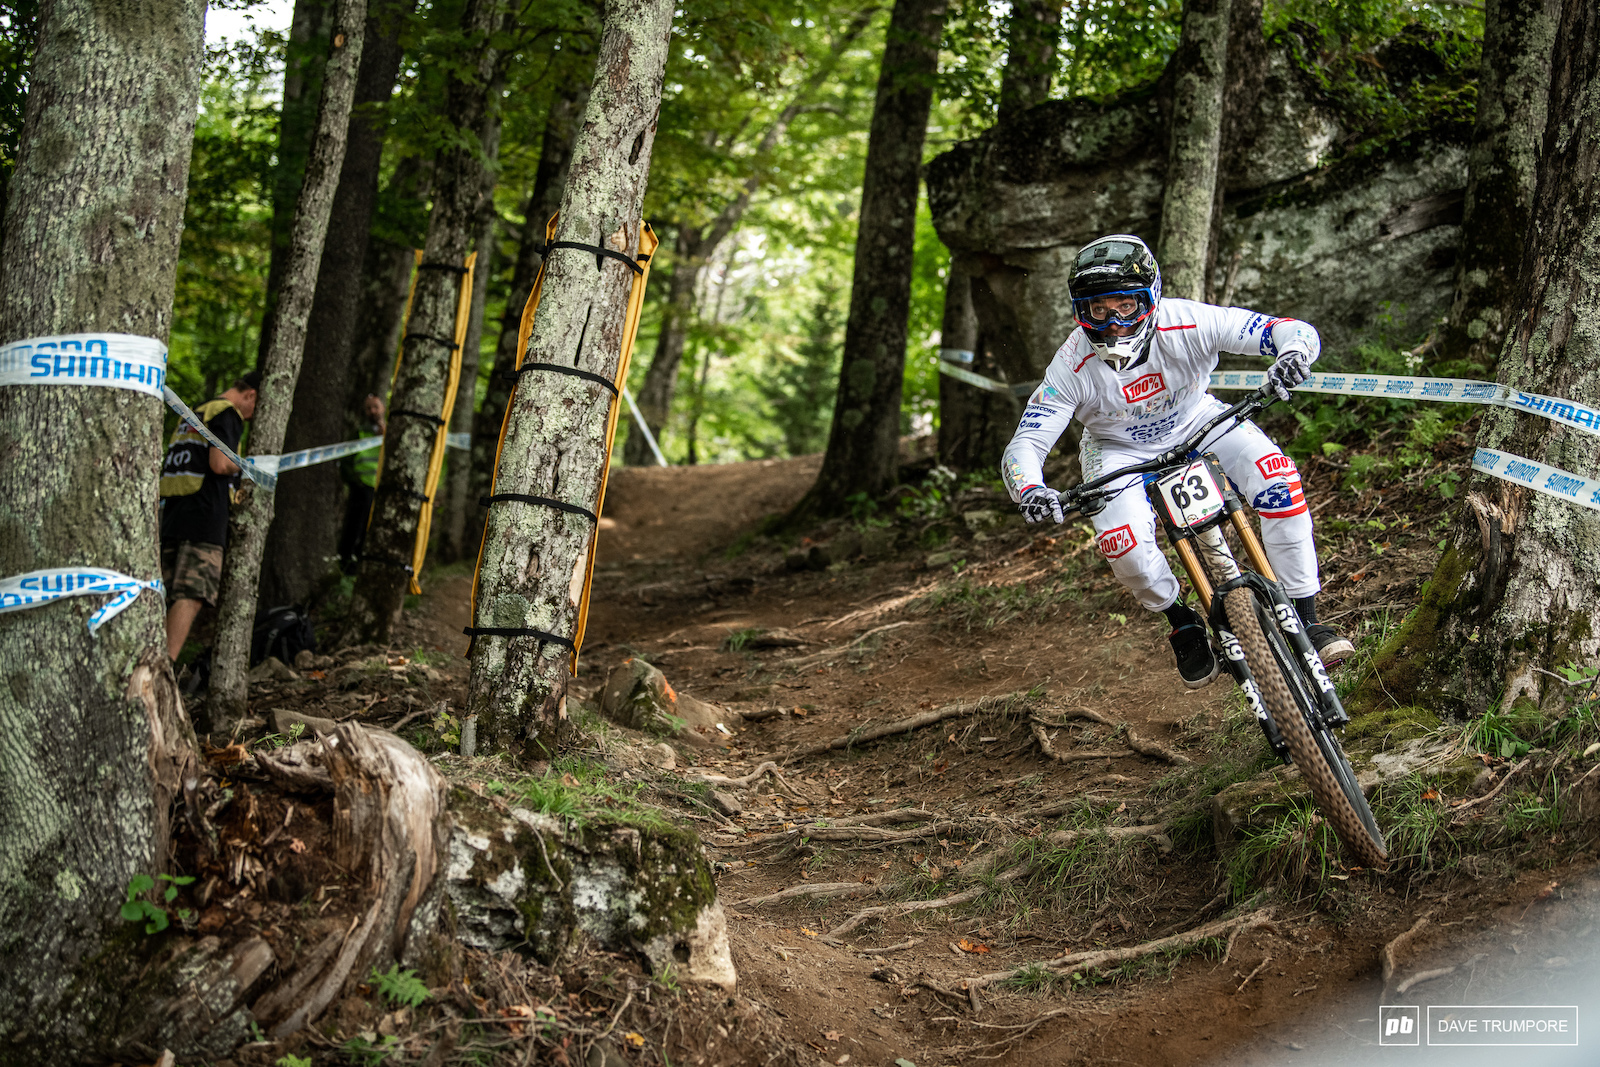 Bruce Klein is a powerhouse and was muscling his way throve the rocks and roots during training. He hasn t has the best of seasons but sure does look good so far in Snowshoe